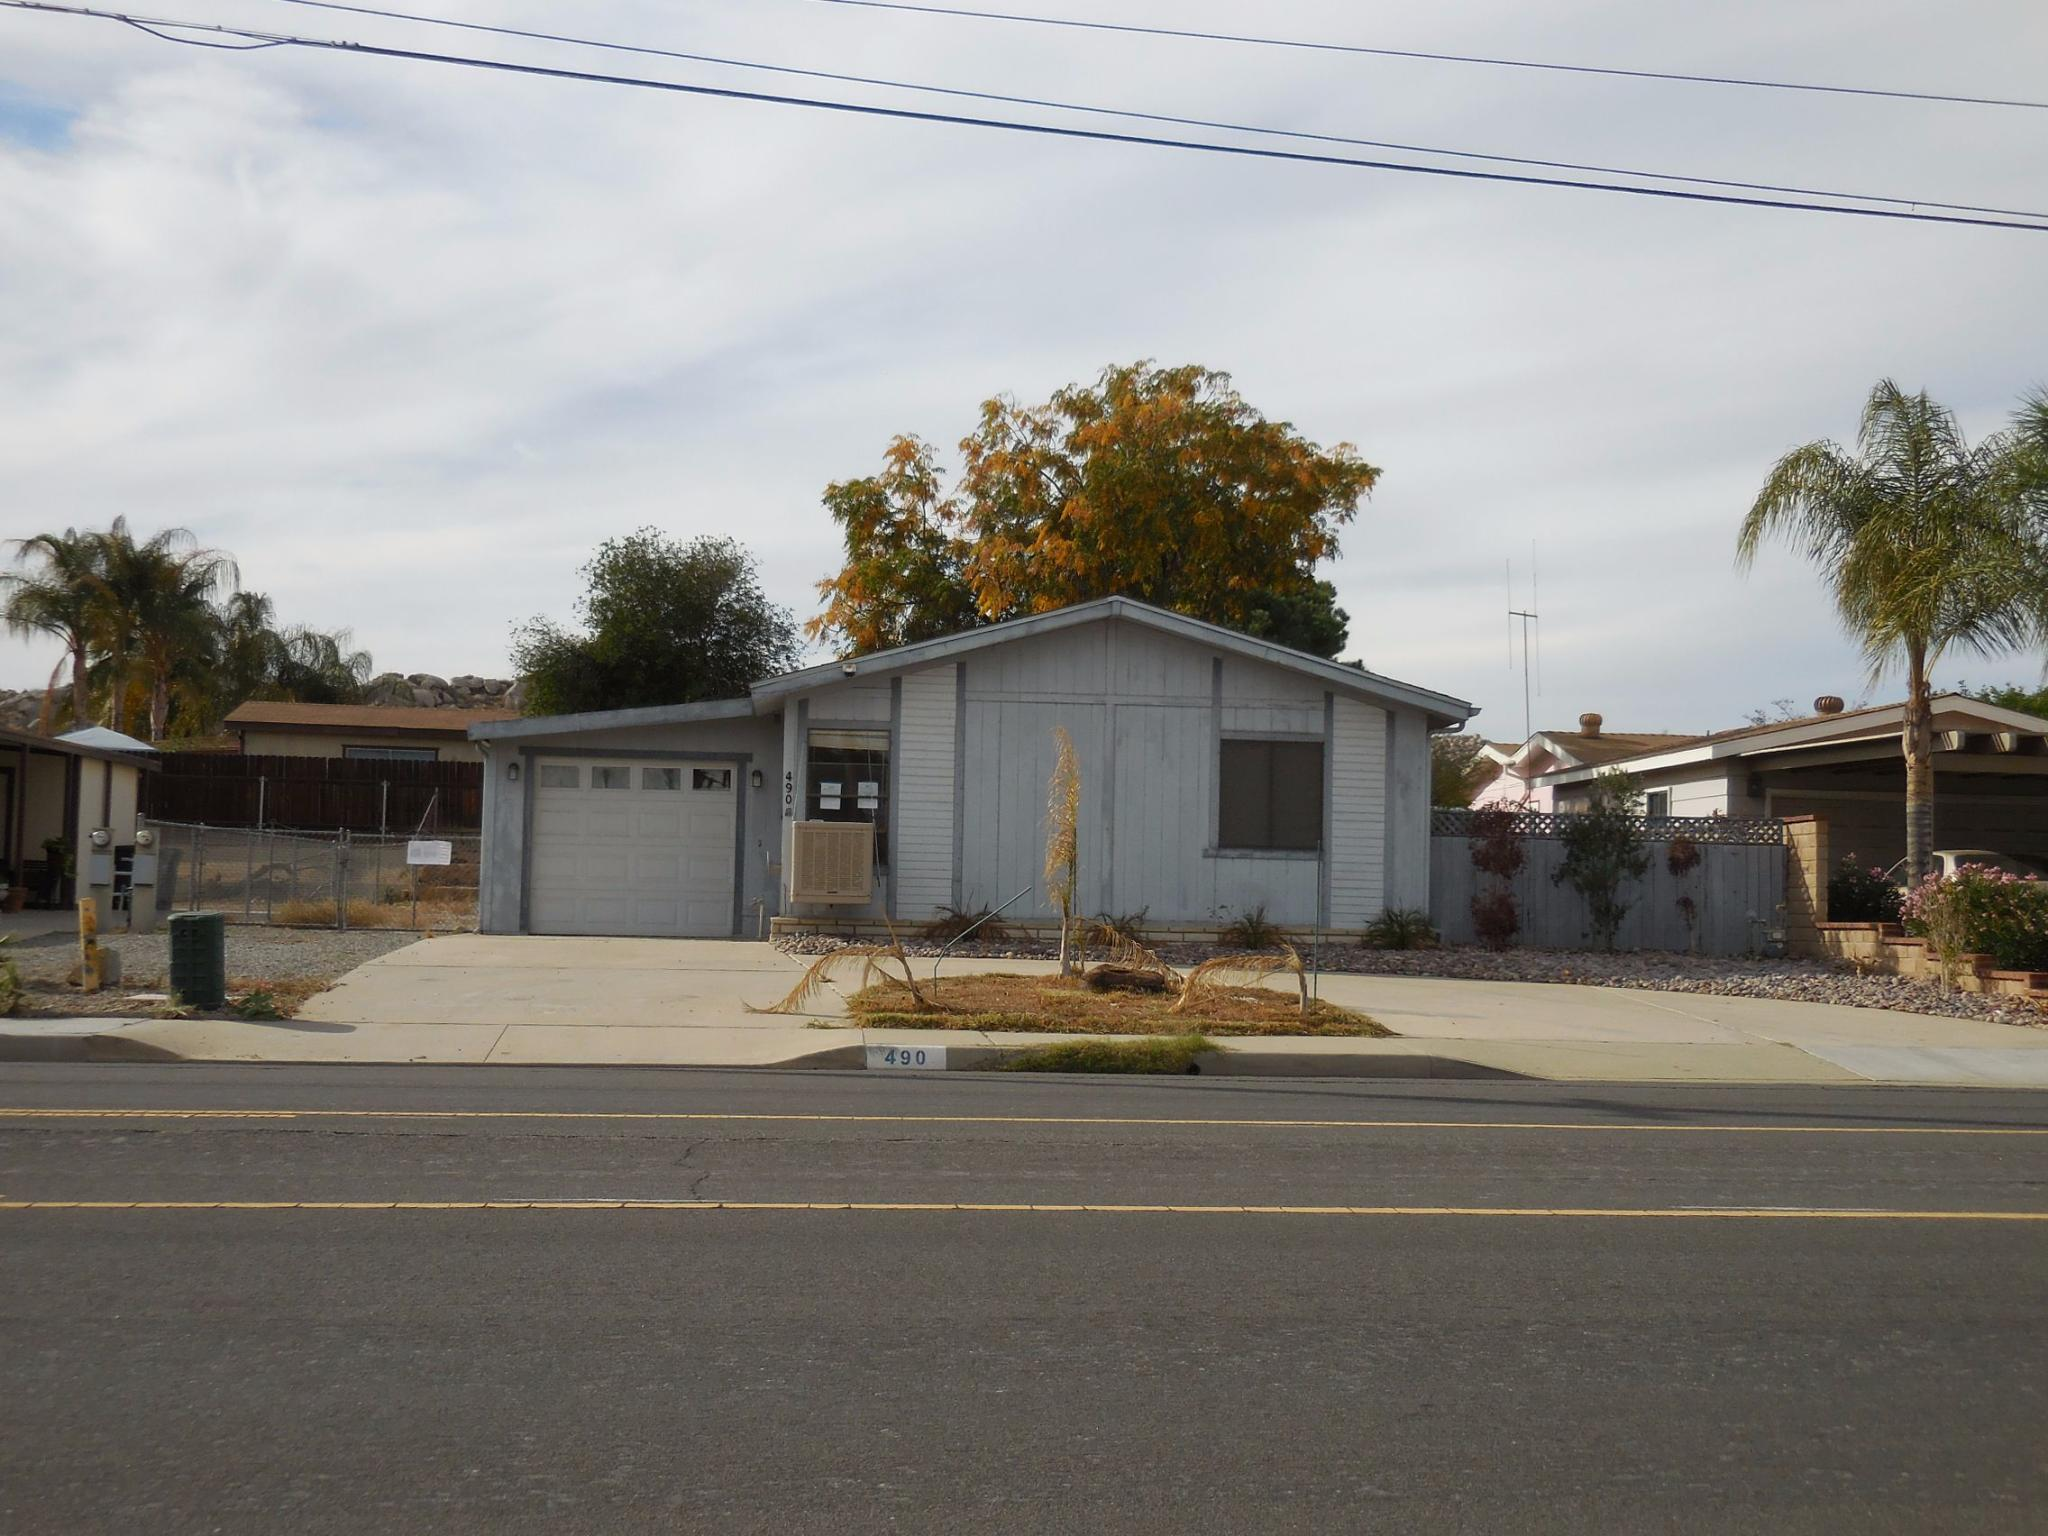 490 n a st perris ca recently sold